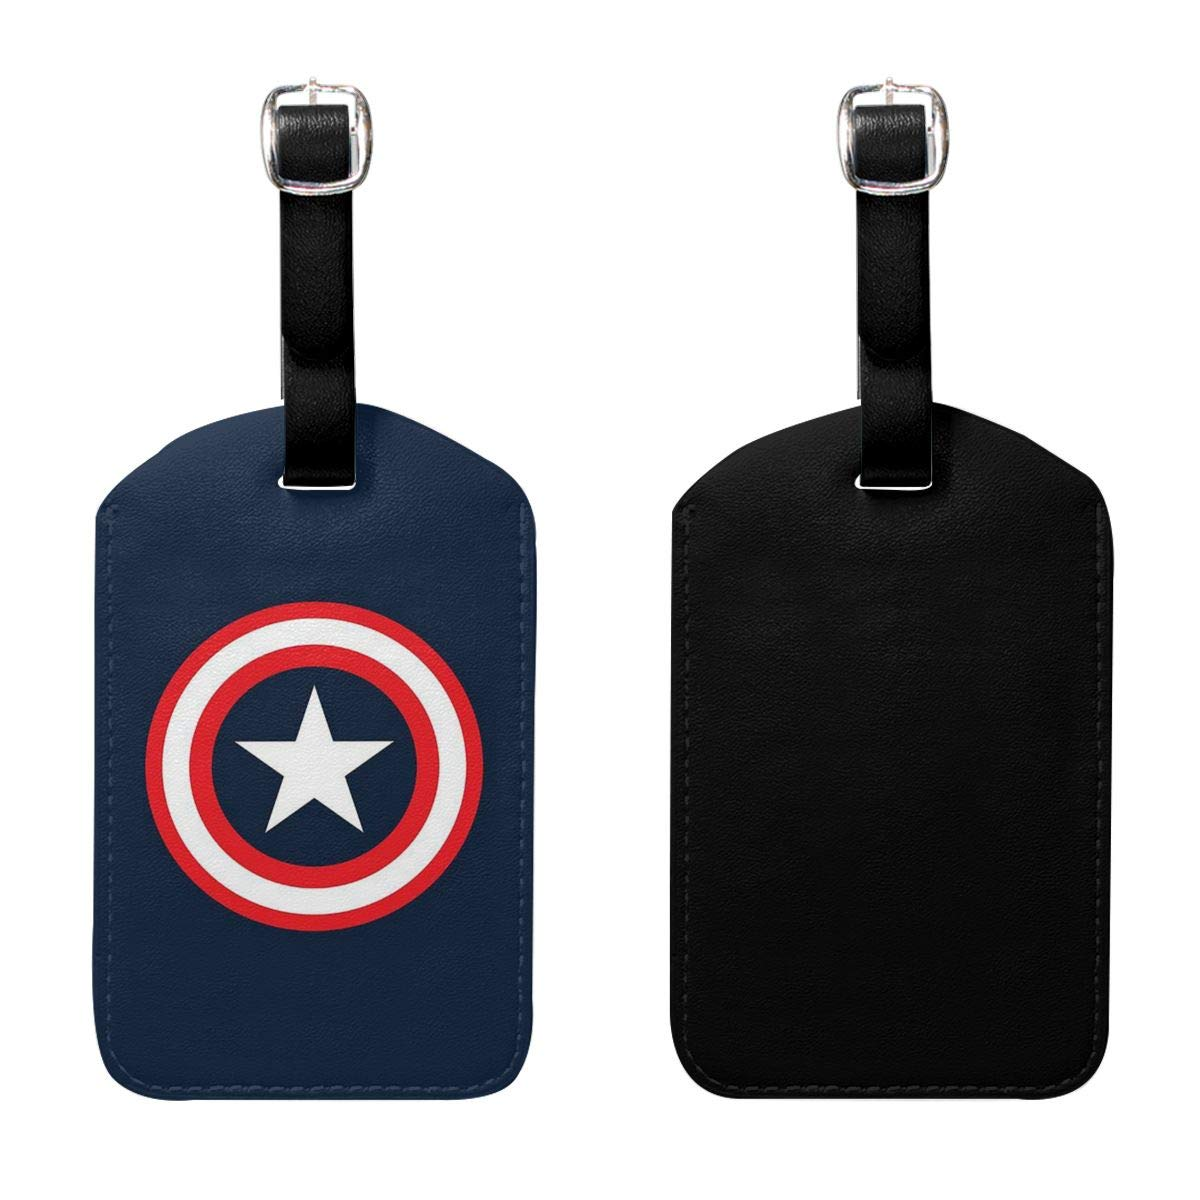 PU Leather Luggage Tags Captain America Suitcase Labels Bag Adjustable Leather Strap Travel Accessories Set of 2